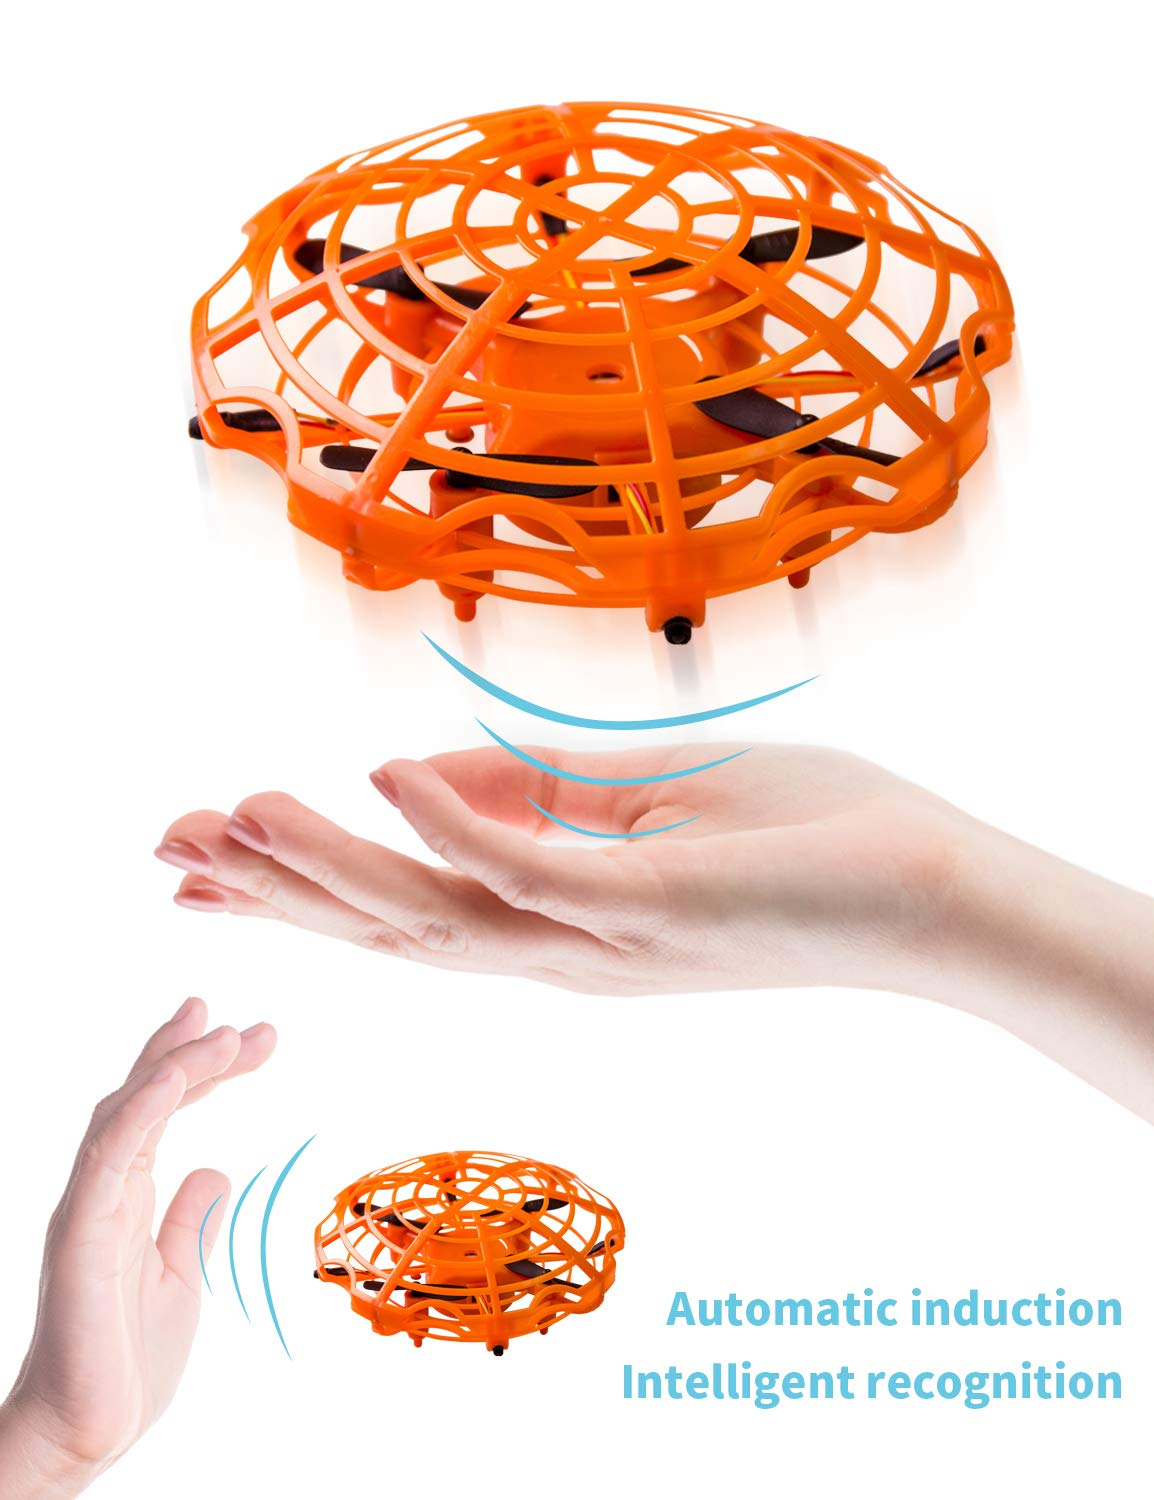 Refasy Flying Toys for Kids, UFO Toy for Boys 3 4 5 6 7 8 9 10 11 12 Year Old Drones for Kids Mini Drones Hand Controlled Flying Ball Drone Toys LED Light for Kids, Boys and Girls Toys Orange by Refasy (Image #4)